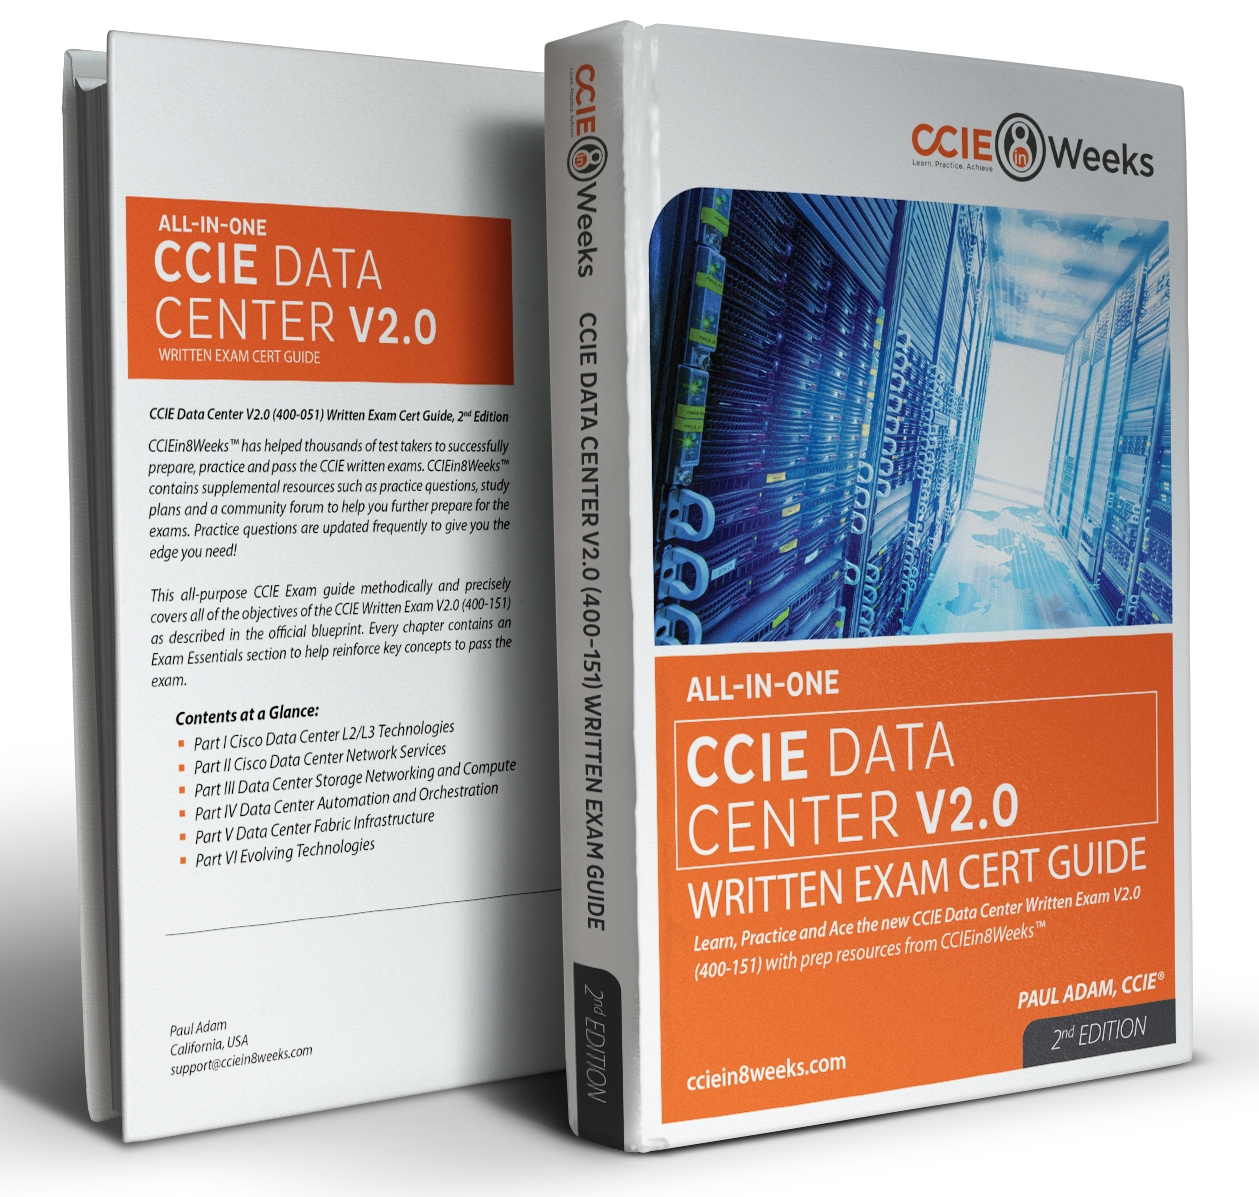 CCIE Data Center Written Exam Cert Guide